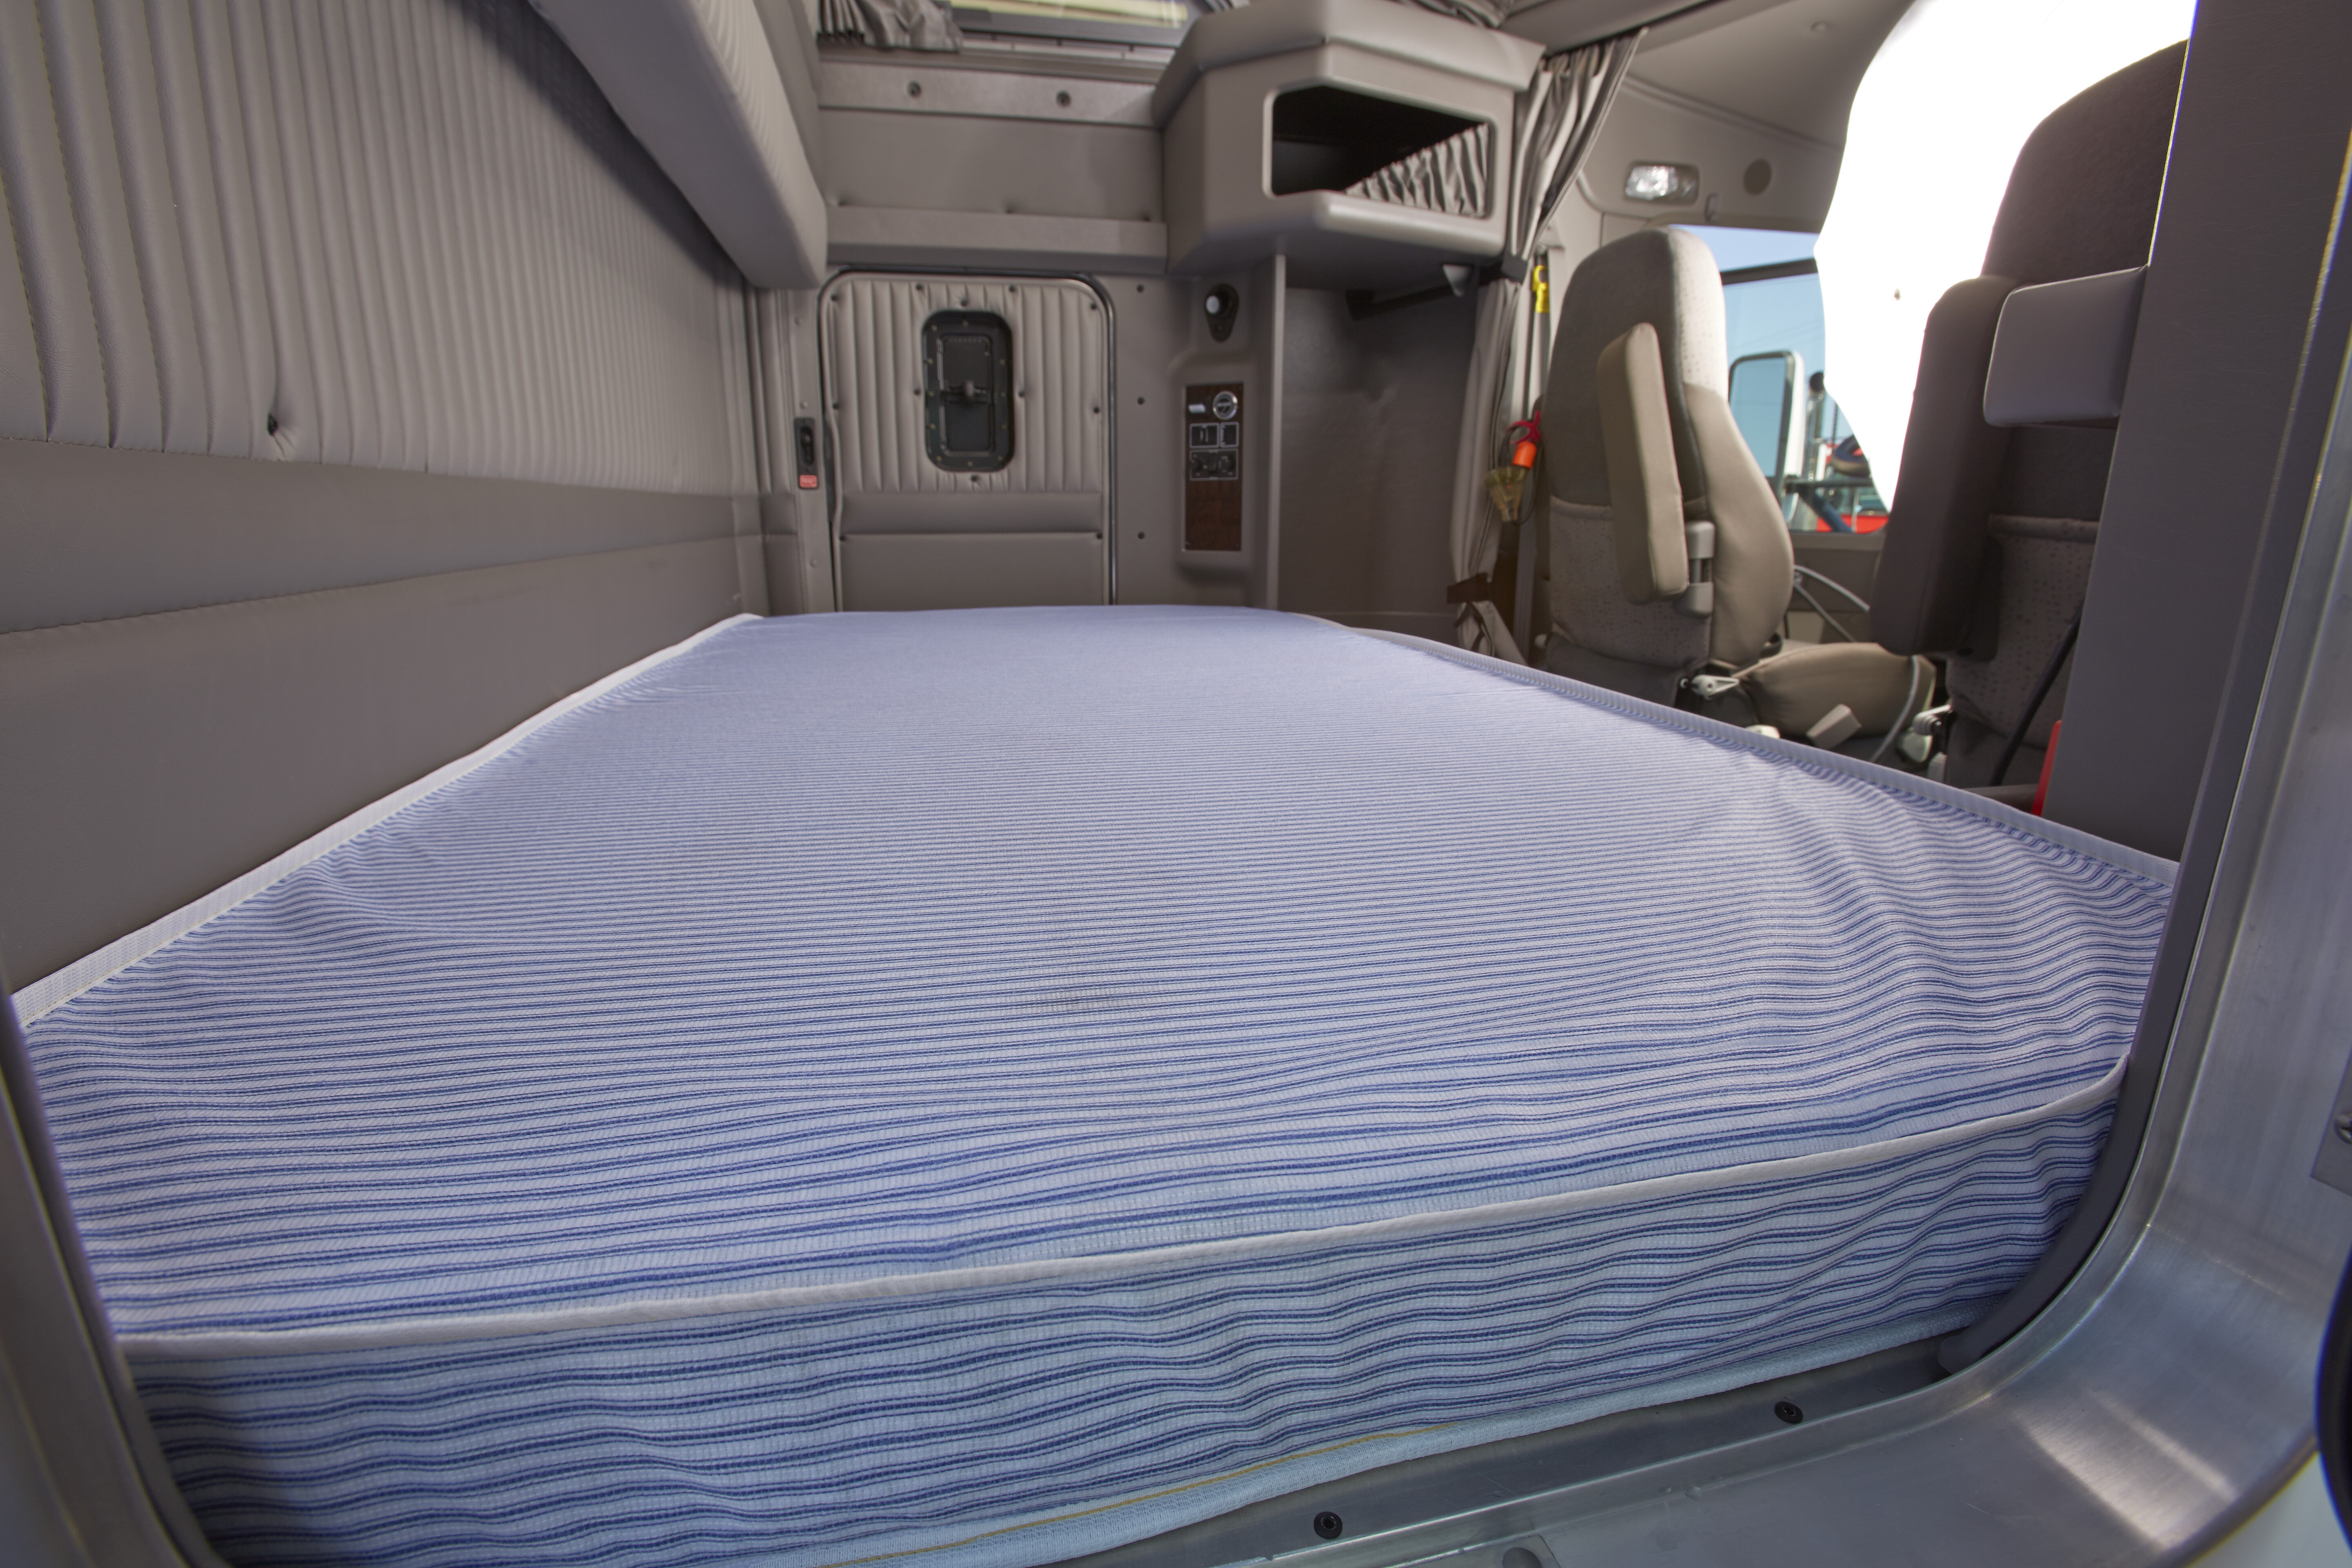 w suv inflatable image community the mattress product truck pump products camping